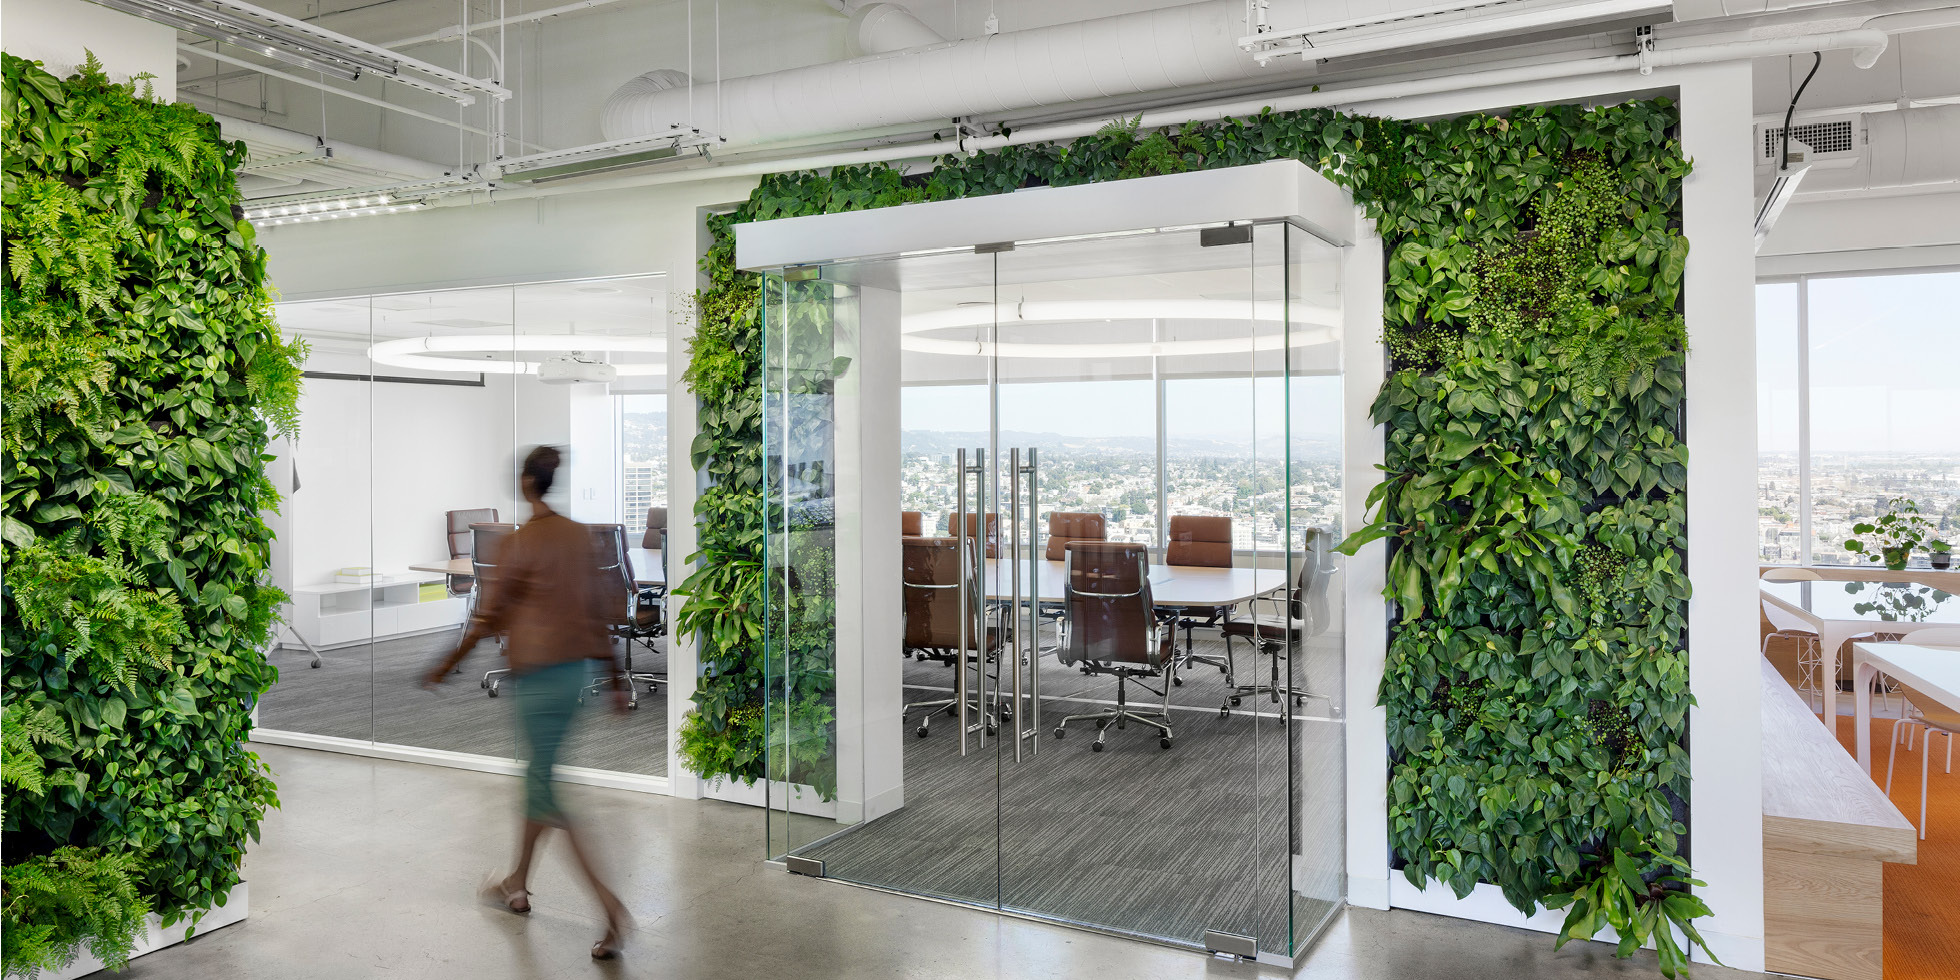 Solar Mosaic Living Wall by Habitat Horticulture - View 1